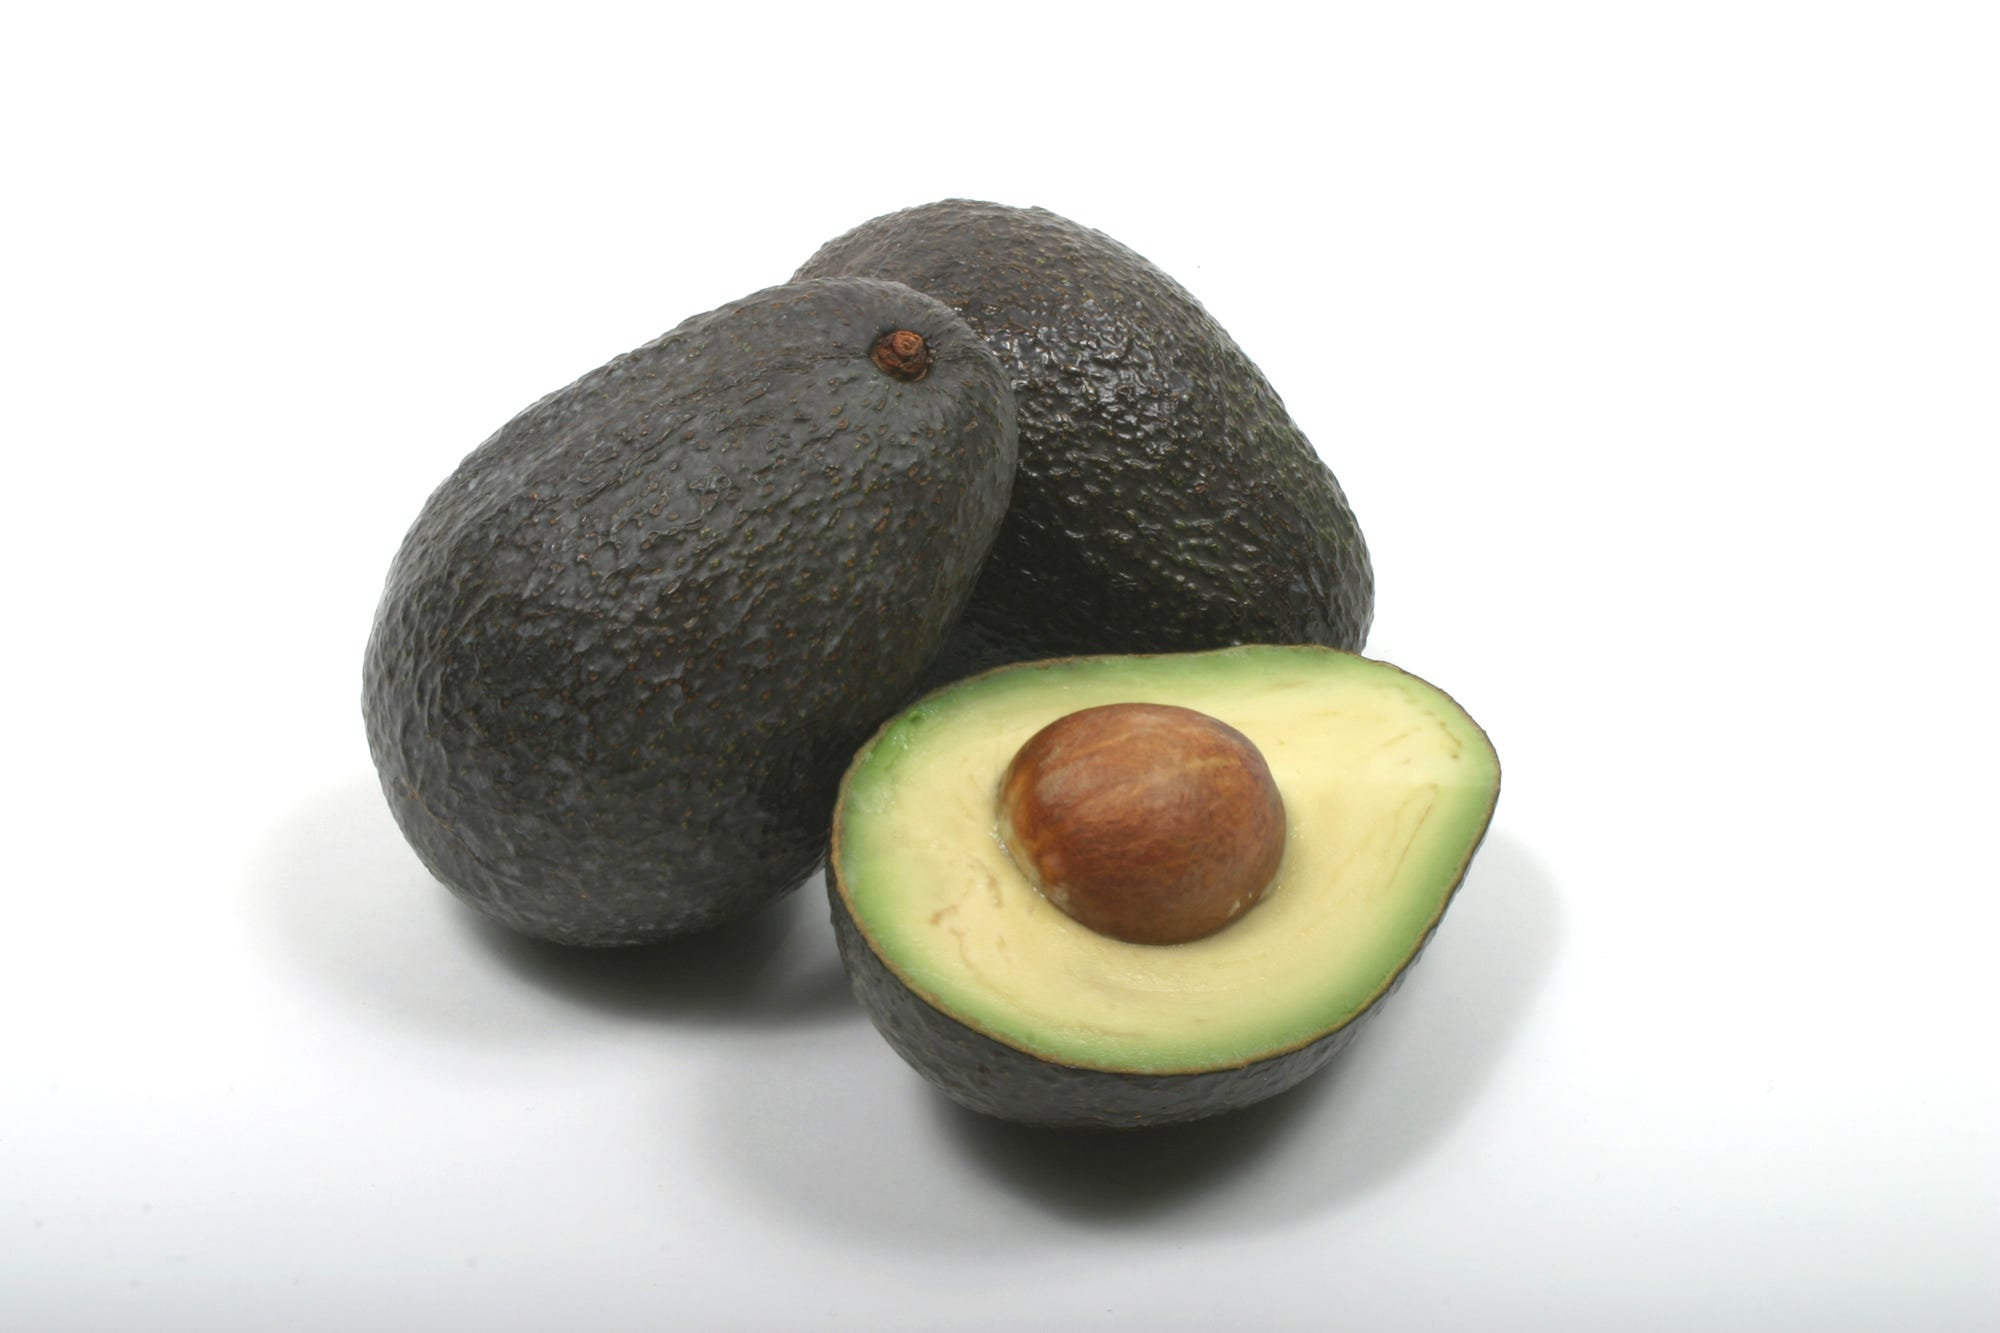 california-company-recalls-avocados-as-precaution-against-listeria-is-your-fruit-safe